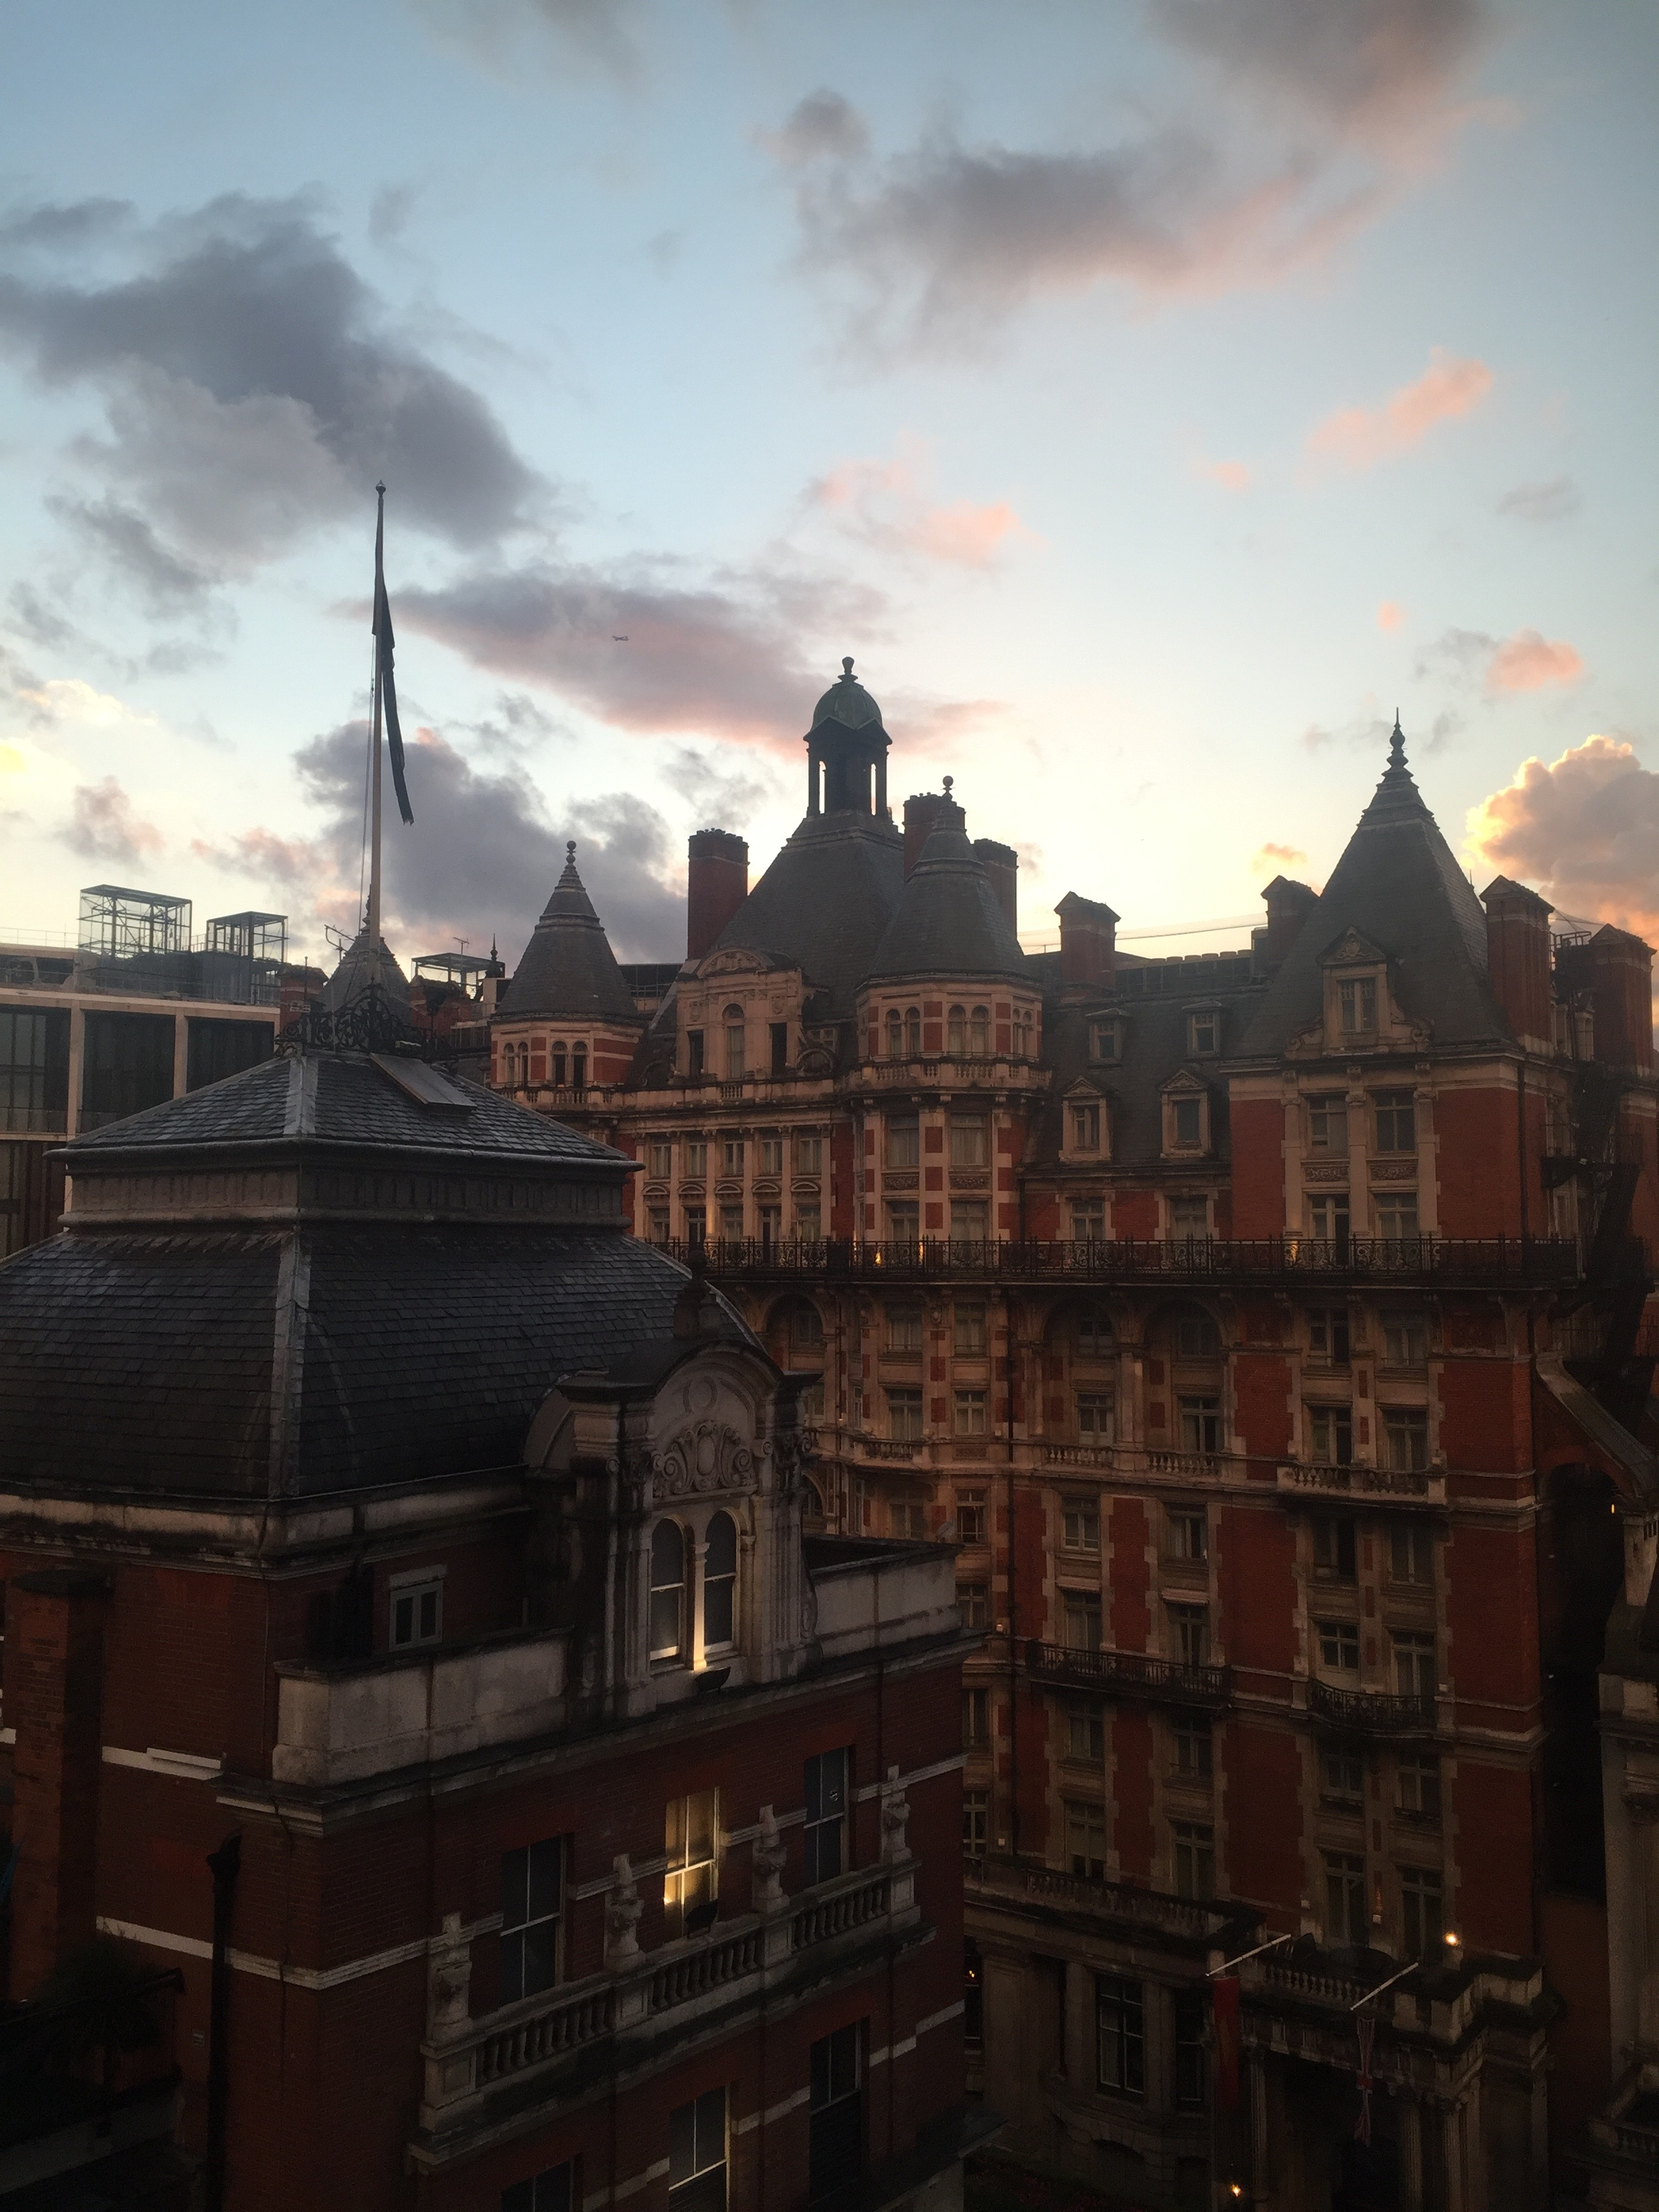 The view from my hotel room in London